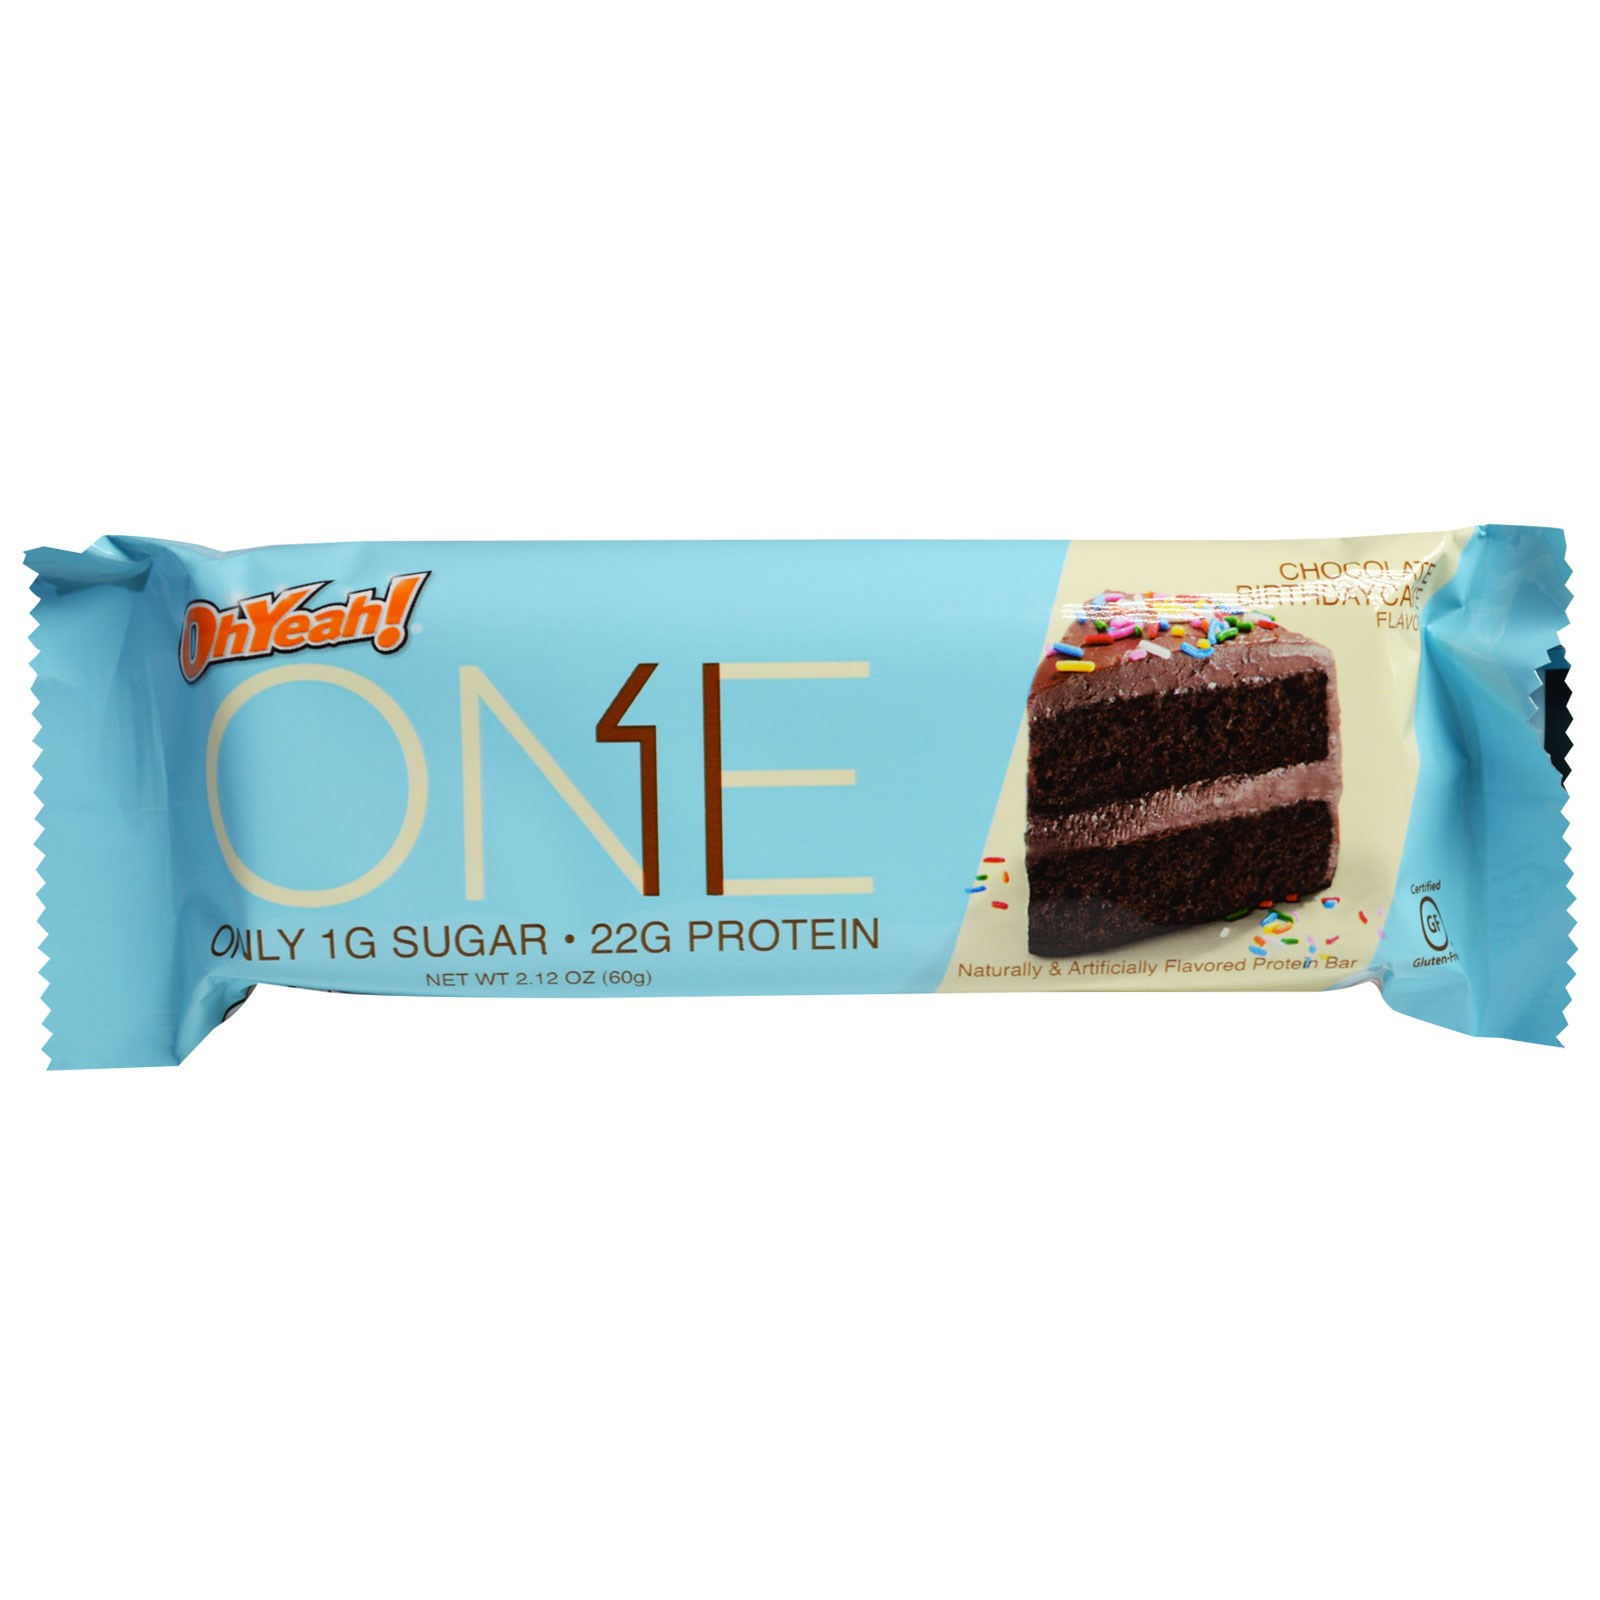 Oh Yeah One Bar Chocolate Birthday Cake 12 Bars 212 Oz 60 G Each Discontinued Item